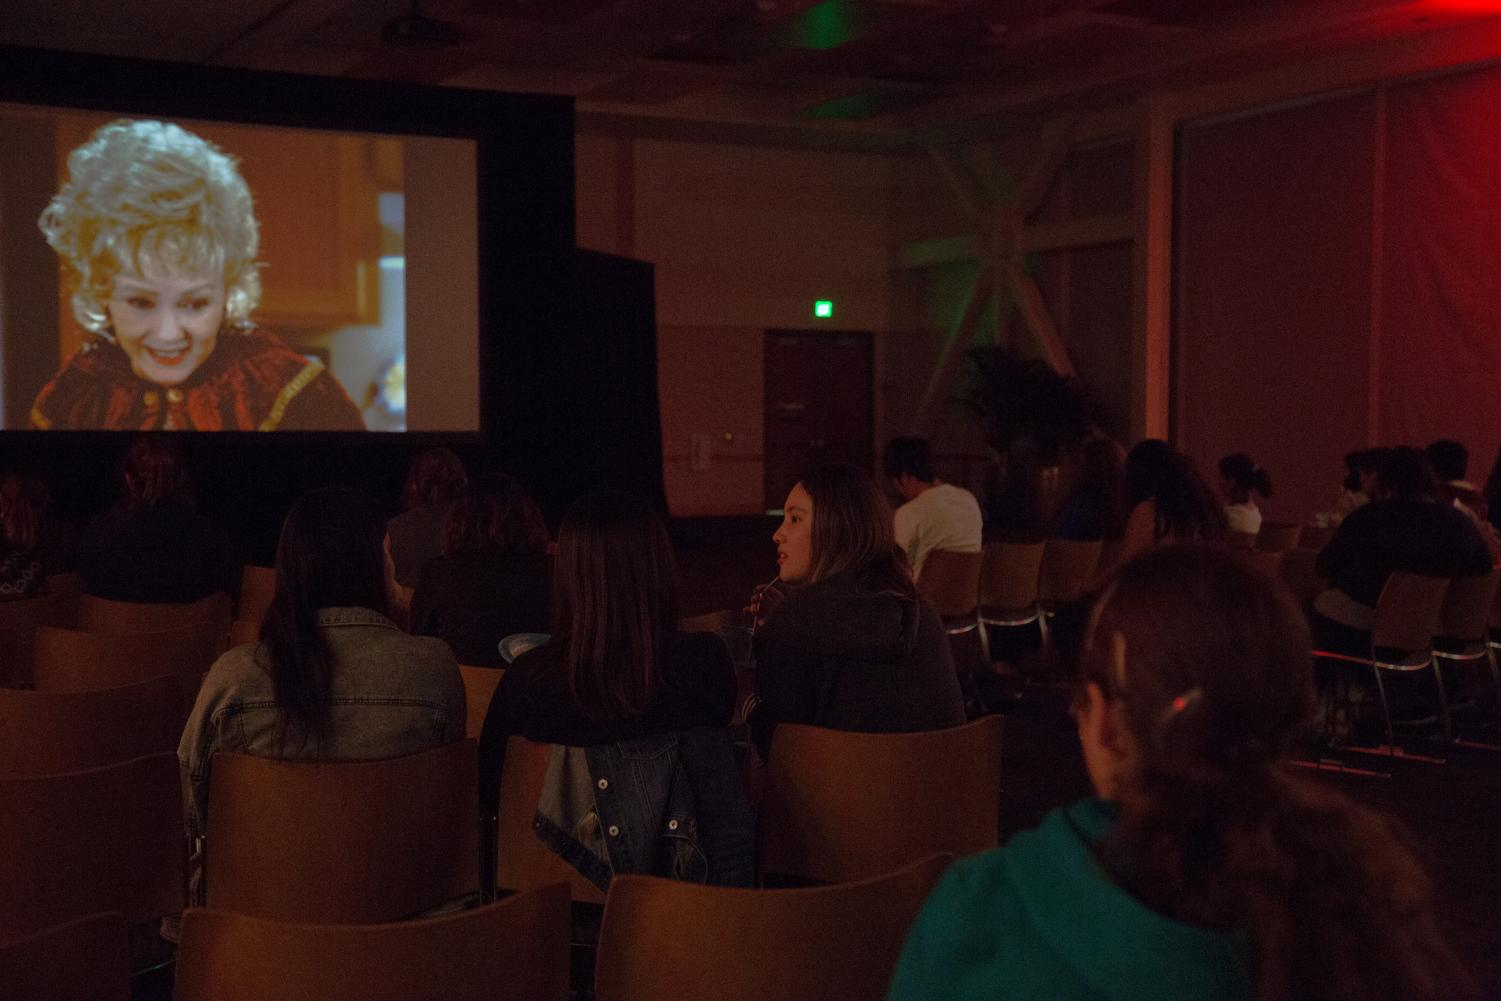 On Oct. 16 students gather around a screen in the USU ballroom to watch the classic film, Halloweentown